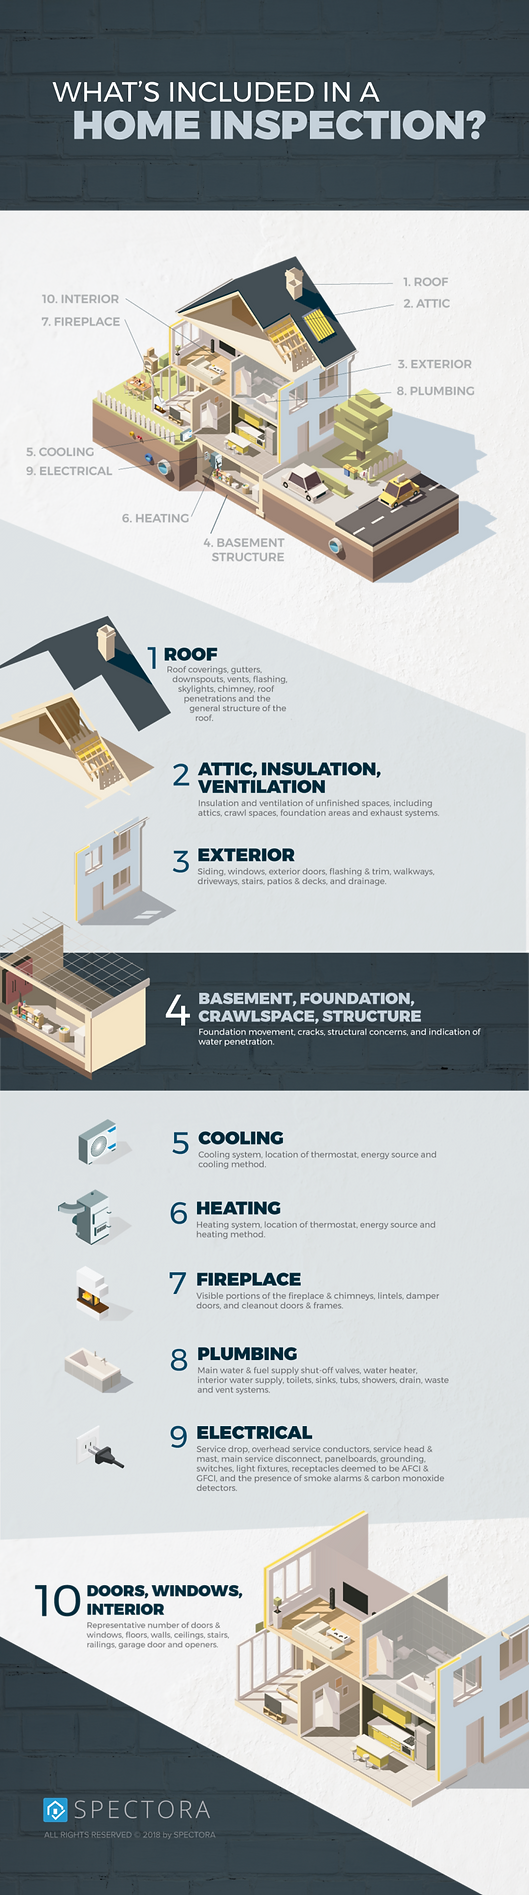 what-included-home-inspection-1-768x2753